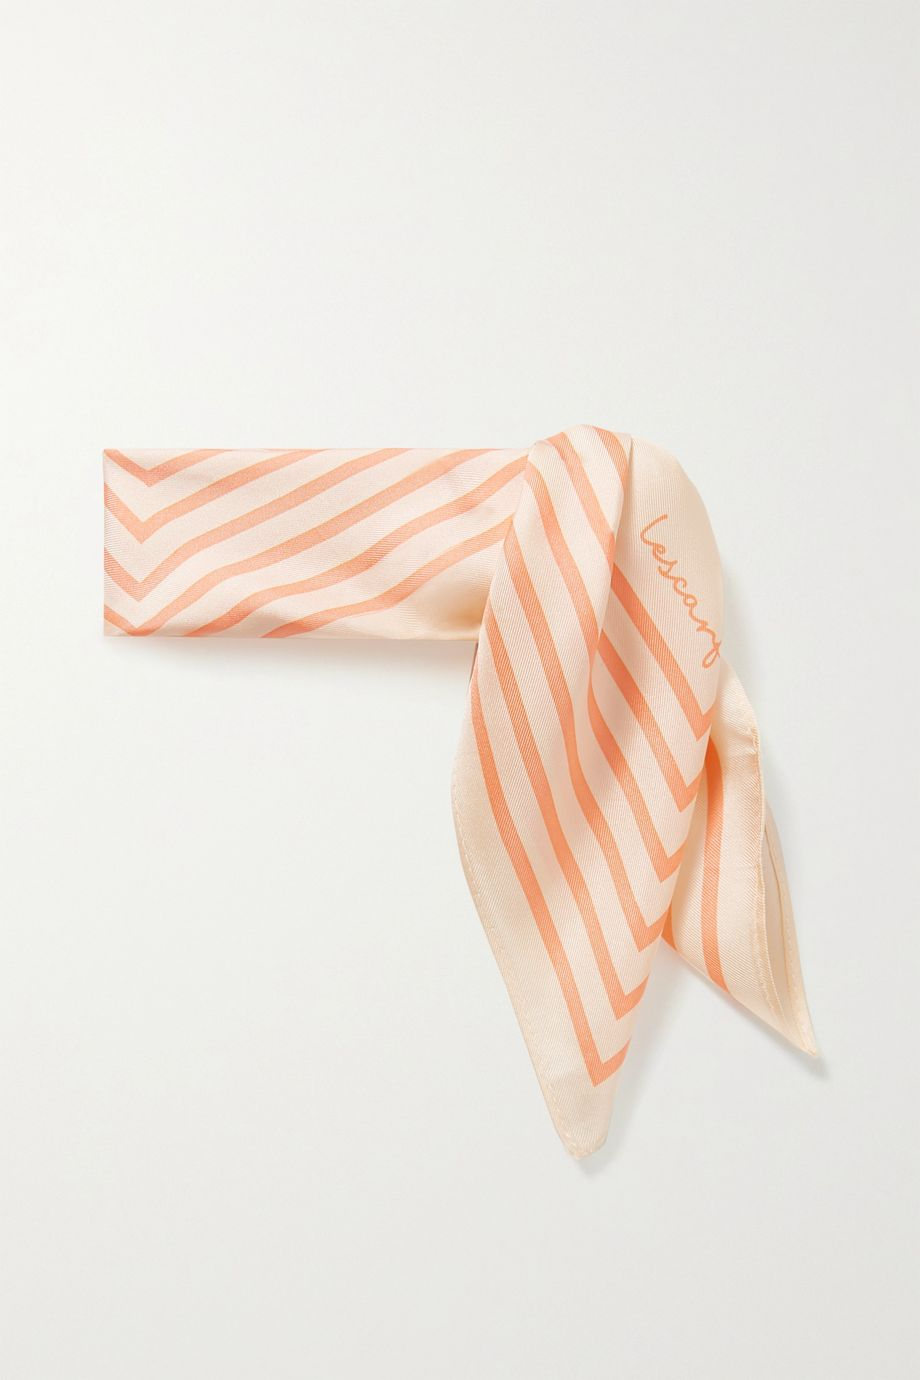 lescarf No. 19 striped silk-twill scarf